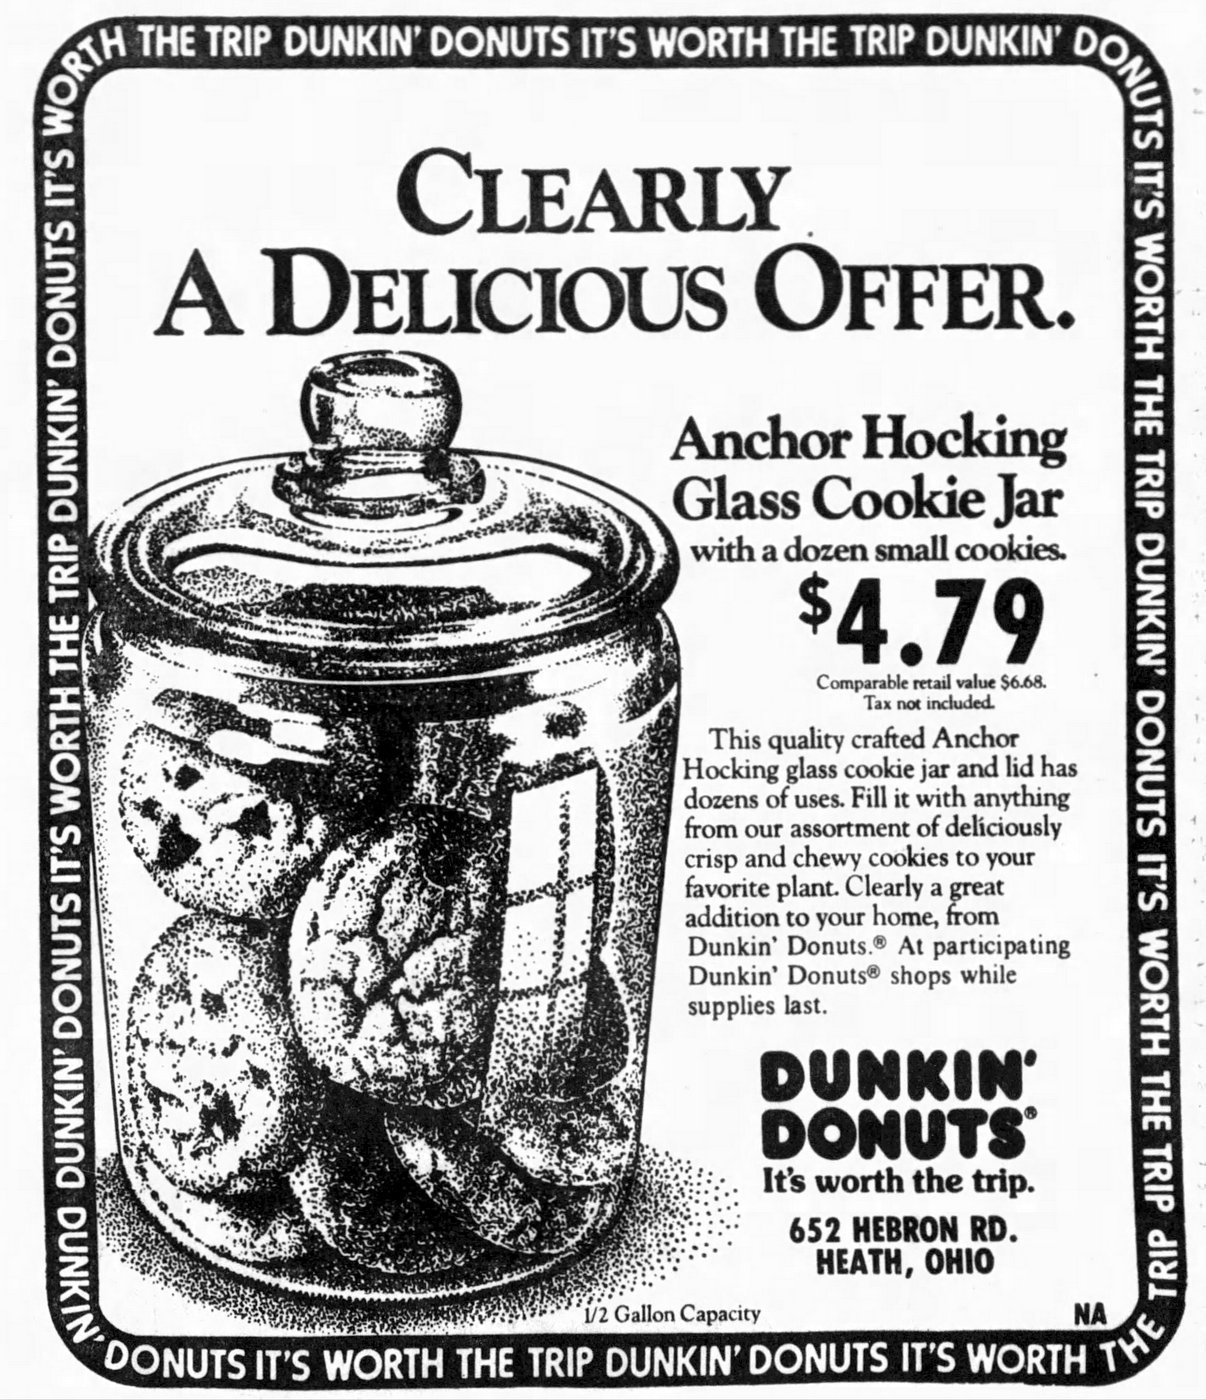 Retro Anchor Hocking glass cookie jar from Dunkin Donuts (1984)